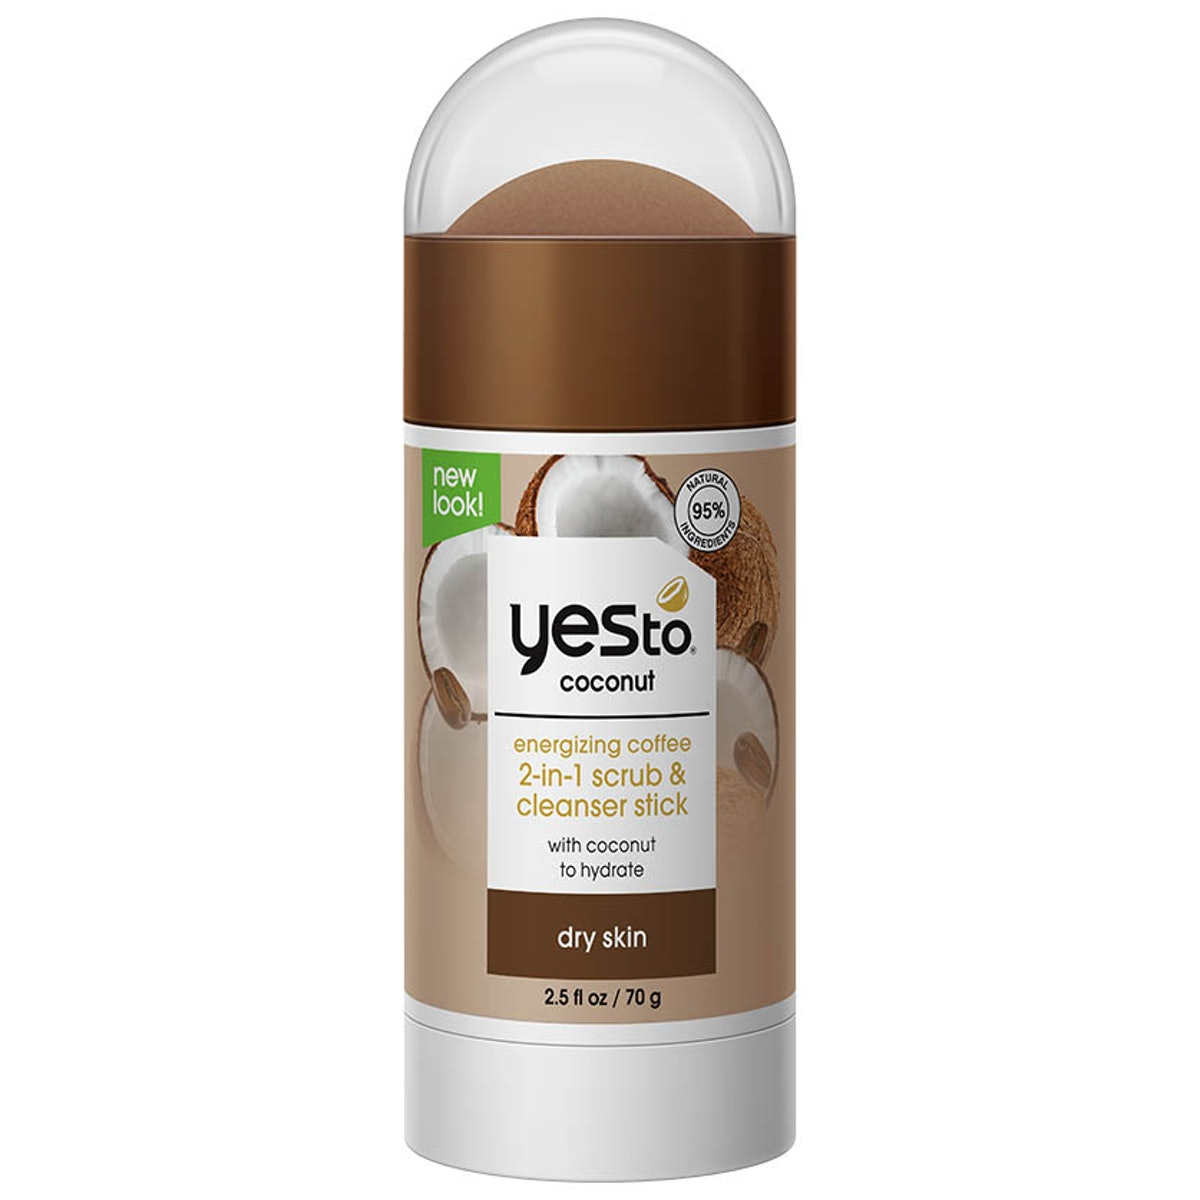 Yes To Energizing Coffee 2-in-1 Scrub & Cleanser Stick